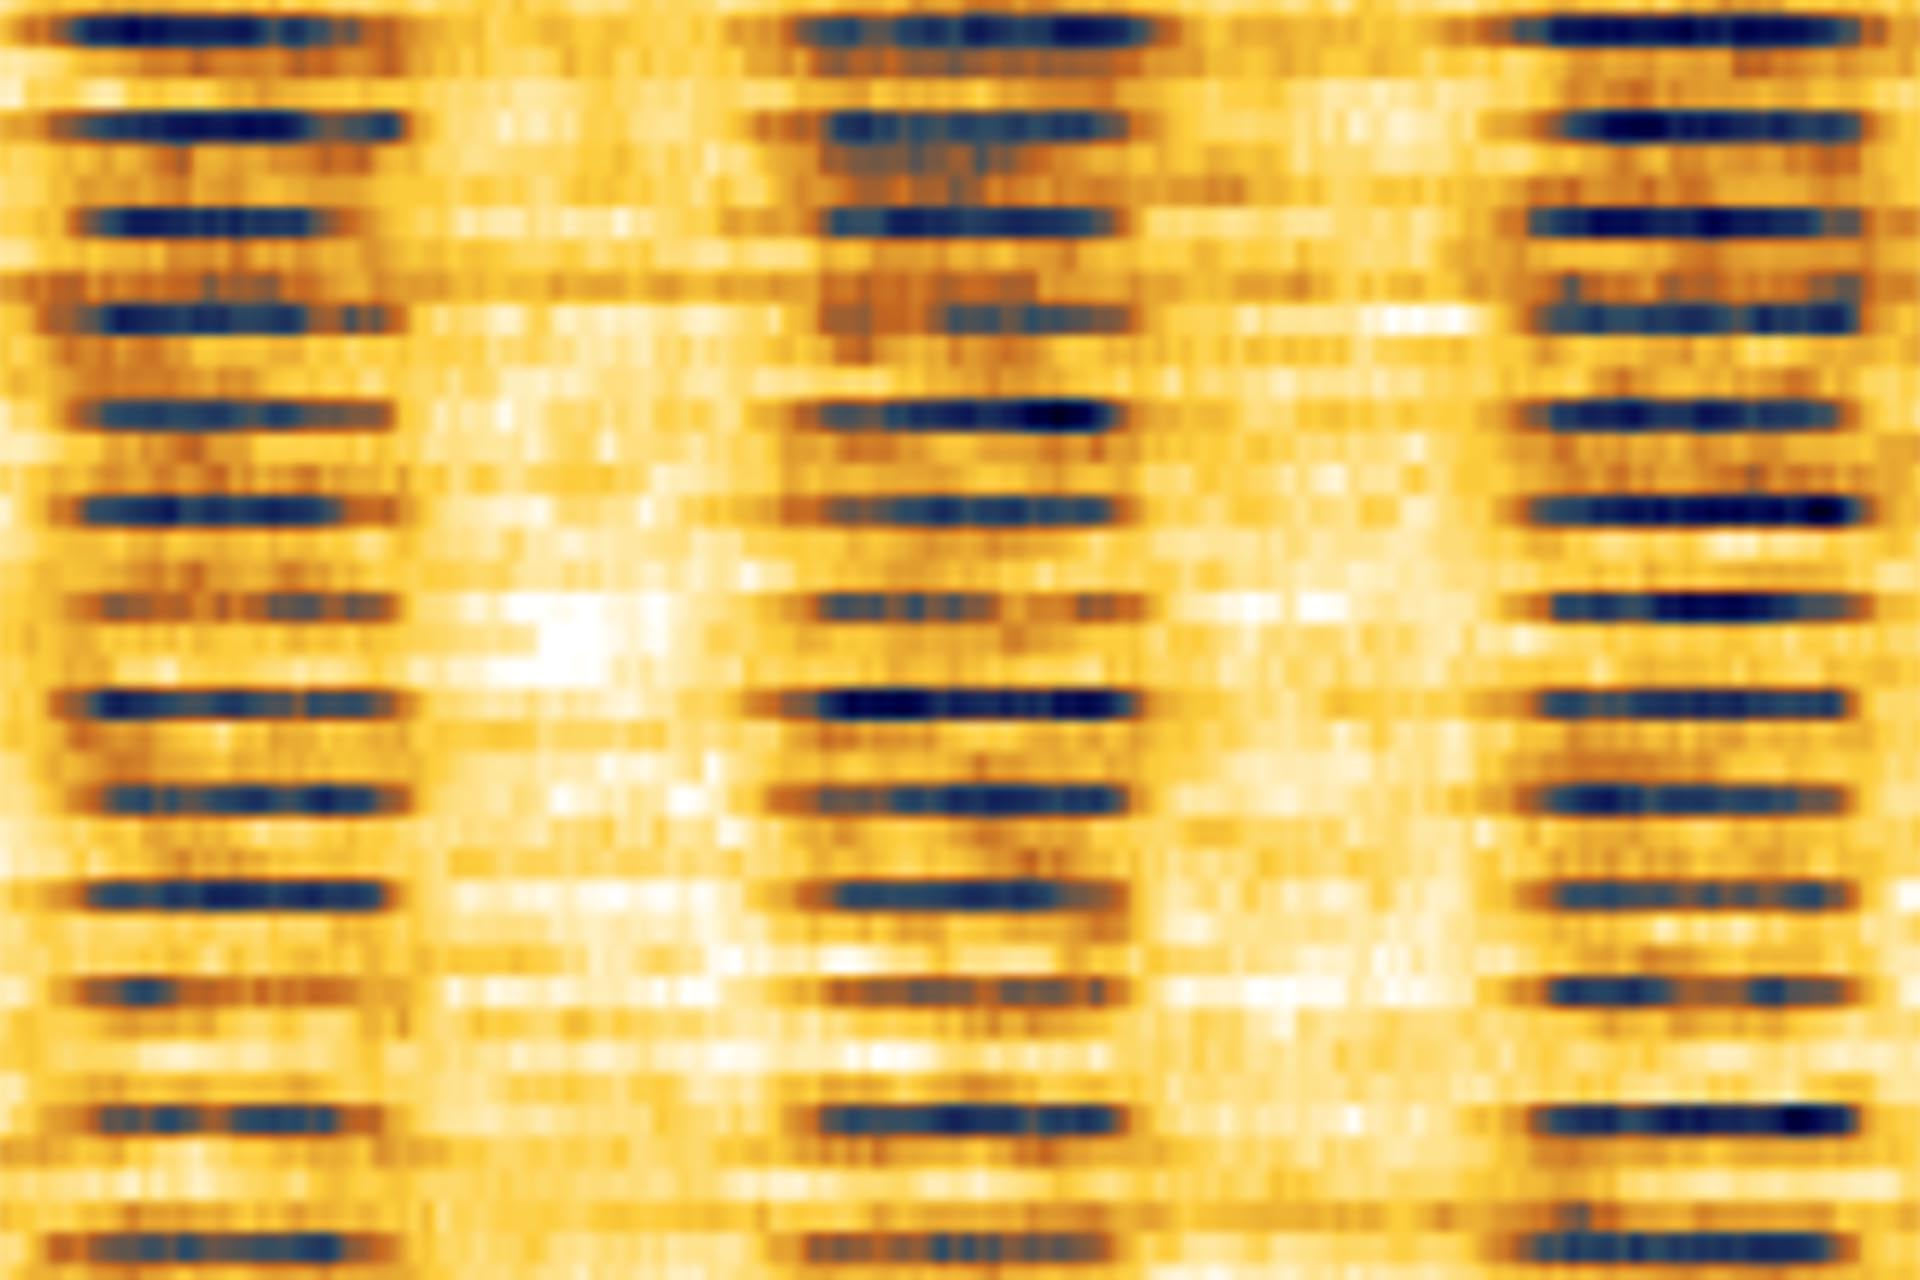 NanoFrazor lithography at its (current) limits. The NanoFrazor AFM image shows linletts with 8.7 nm half-pitch written 2-4 nm deep into PPA. (Pattern transfer was not demonstrated yet at this high feature density PPA structures)